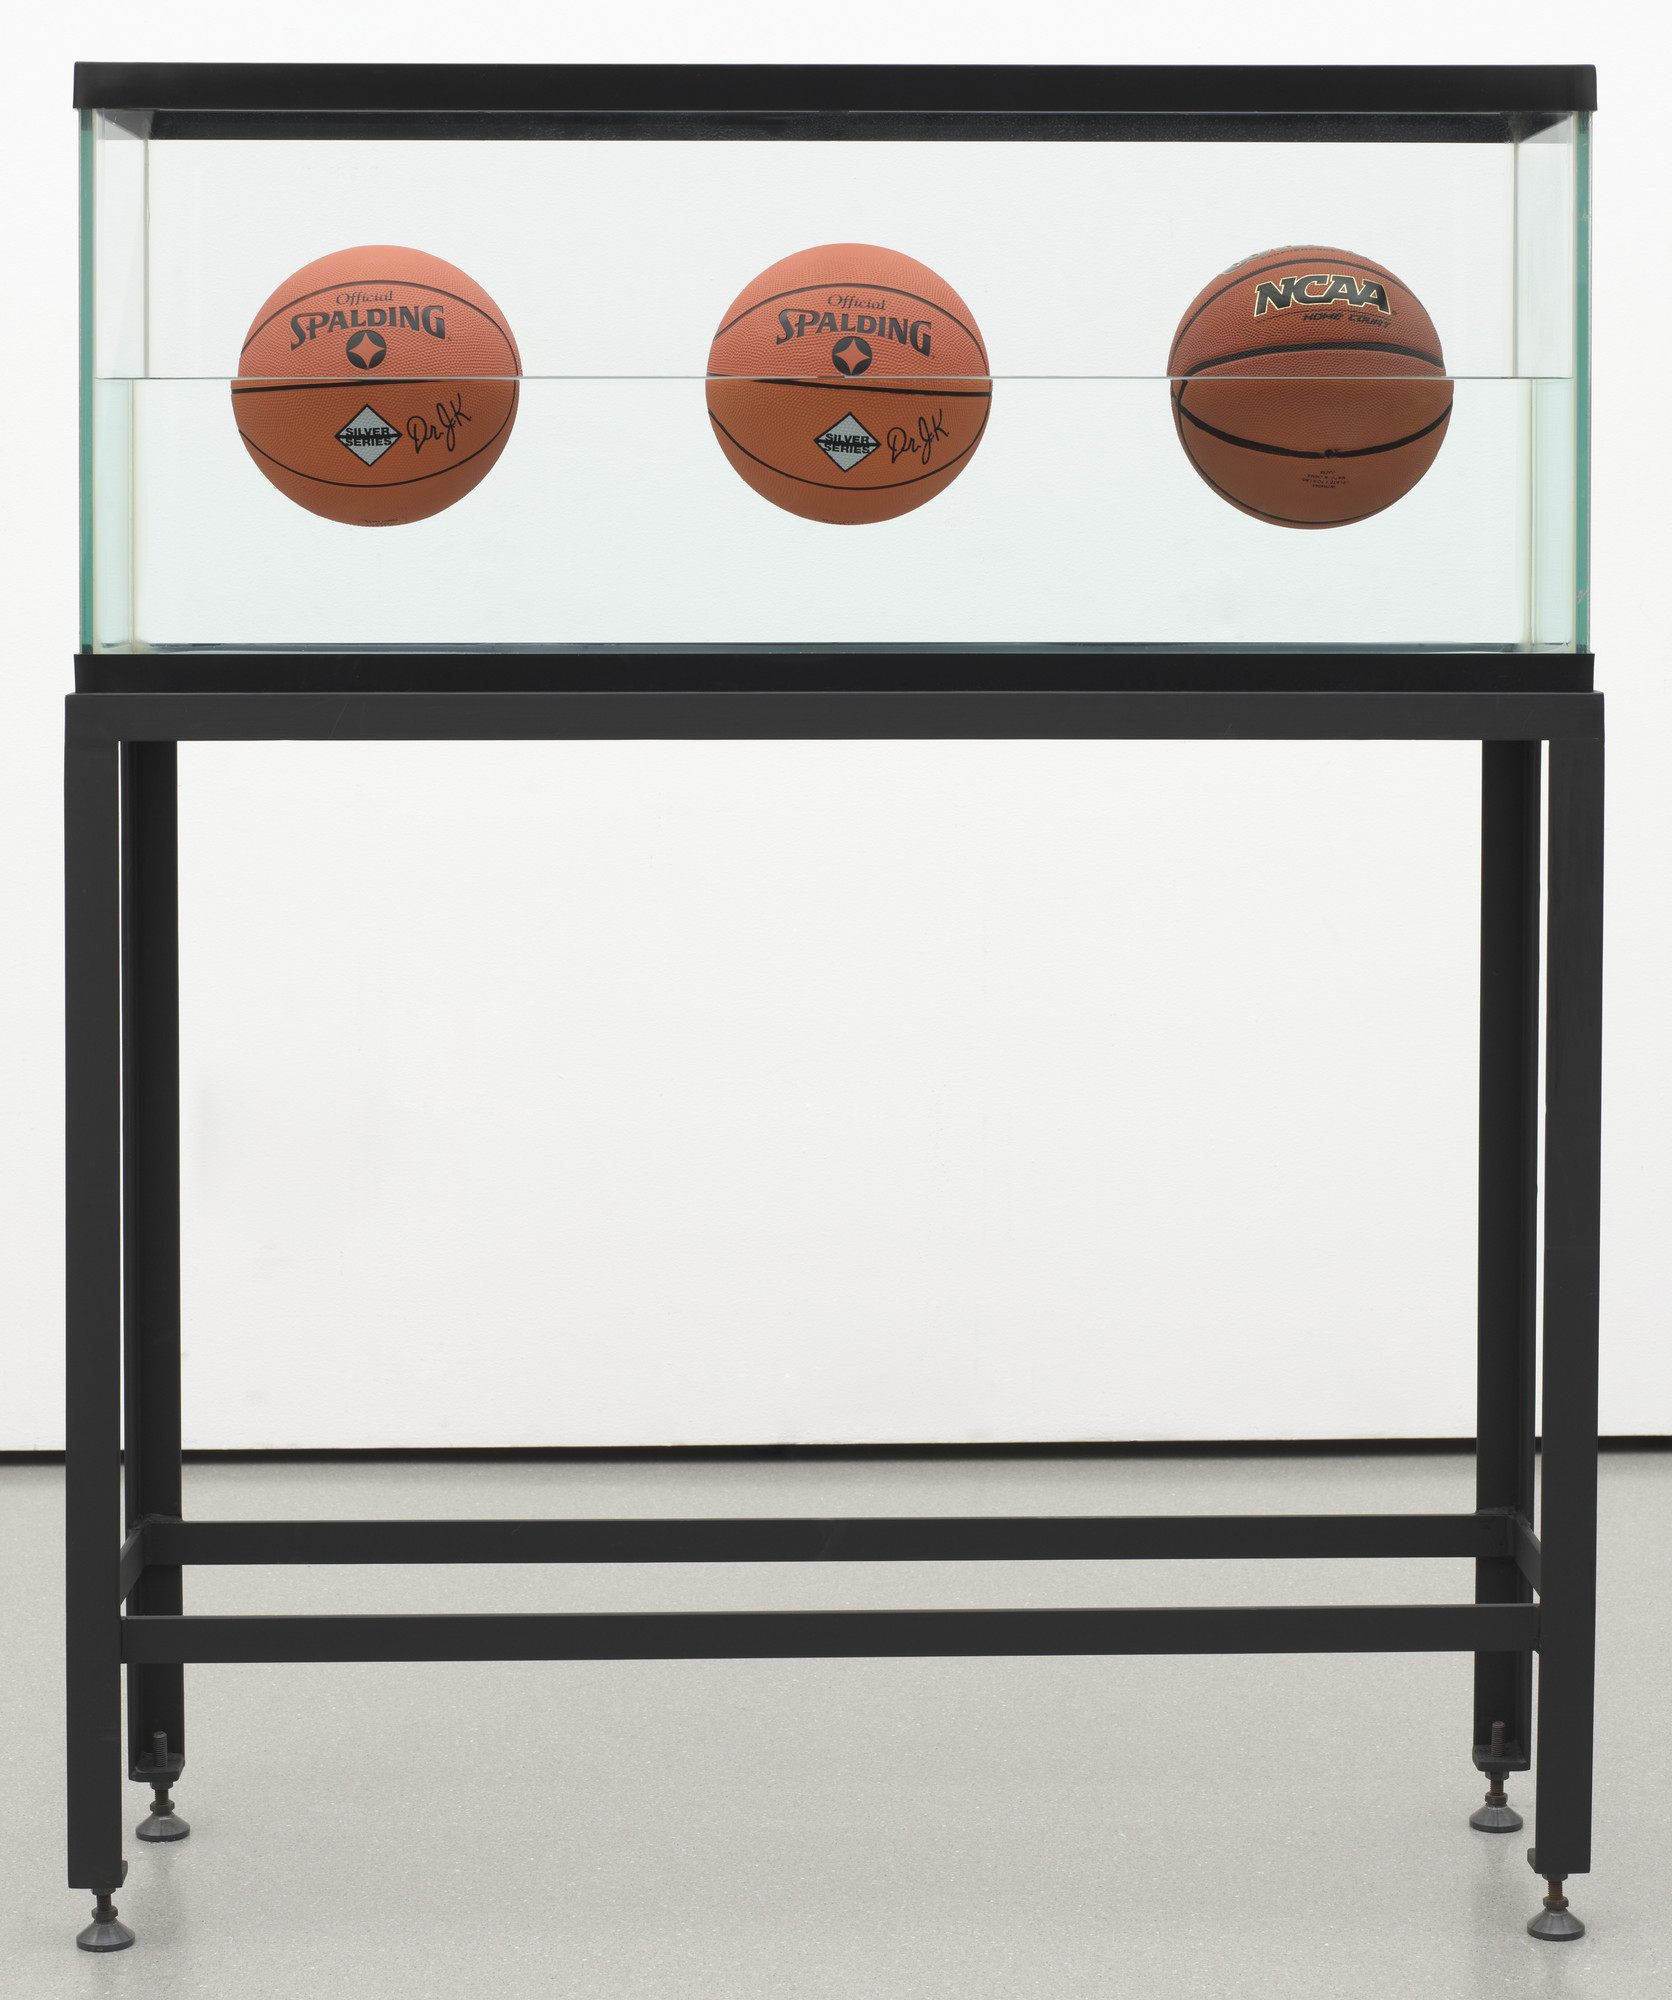 Jeff Koons. Three Ball 50/50 Tank (Two Dr. J. Silver Series, One Wilson Supershot). 1985